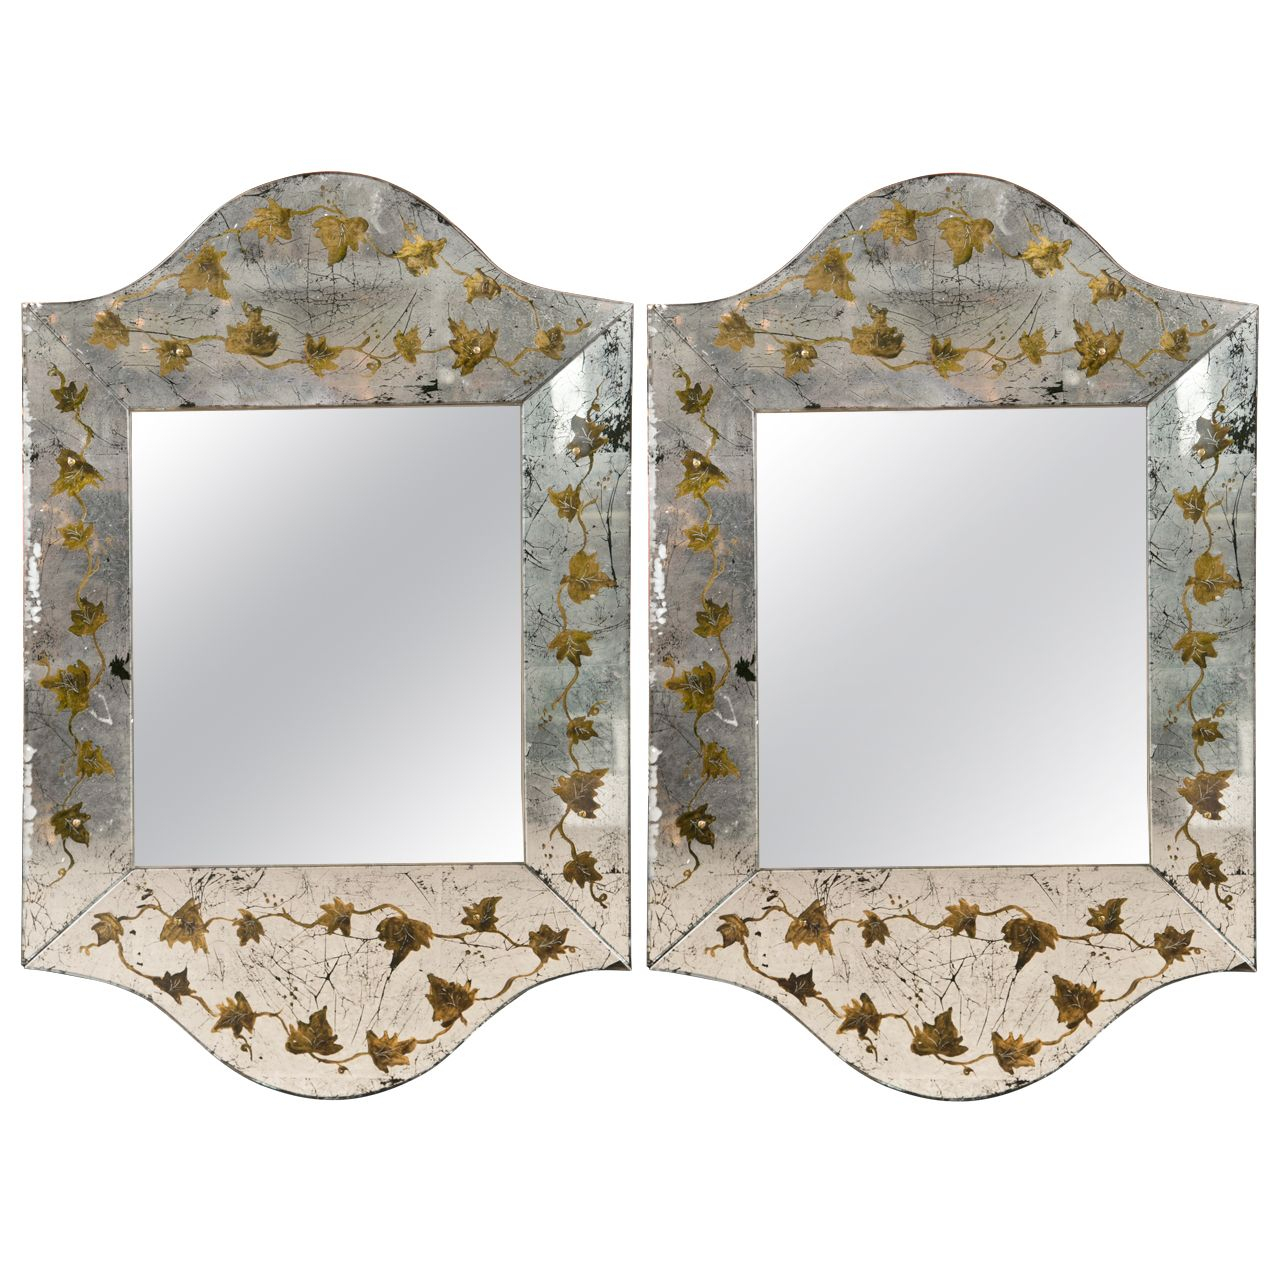 Pair Of Eglomise Glass Scalloped Mirrors | Verre Eglomise intended for Dariel Tall Arched Scalloped Wall Mirrors (Image 19 of 30)